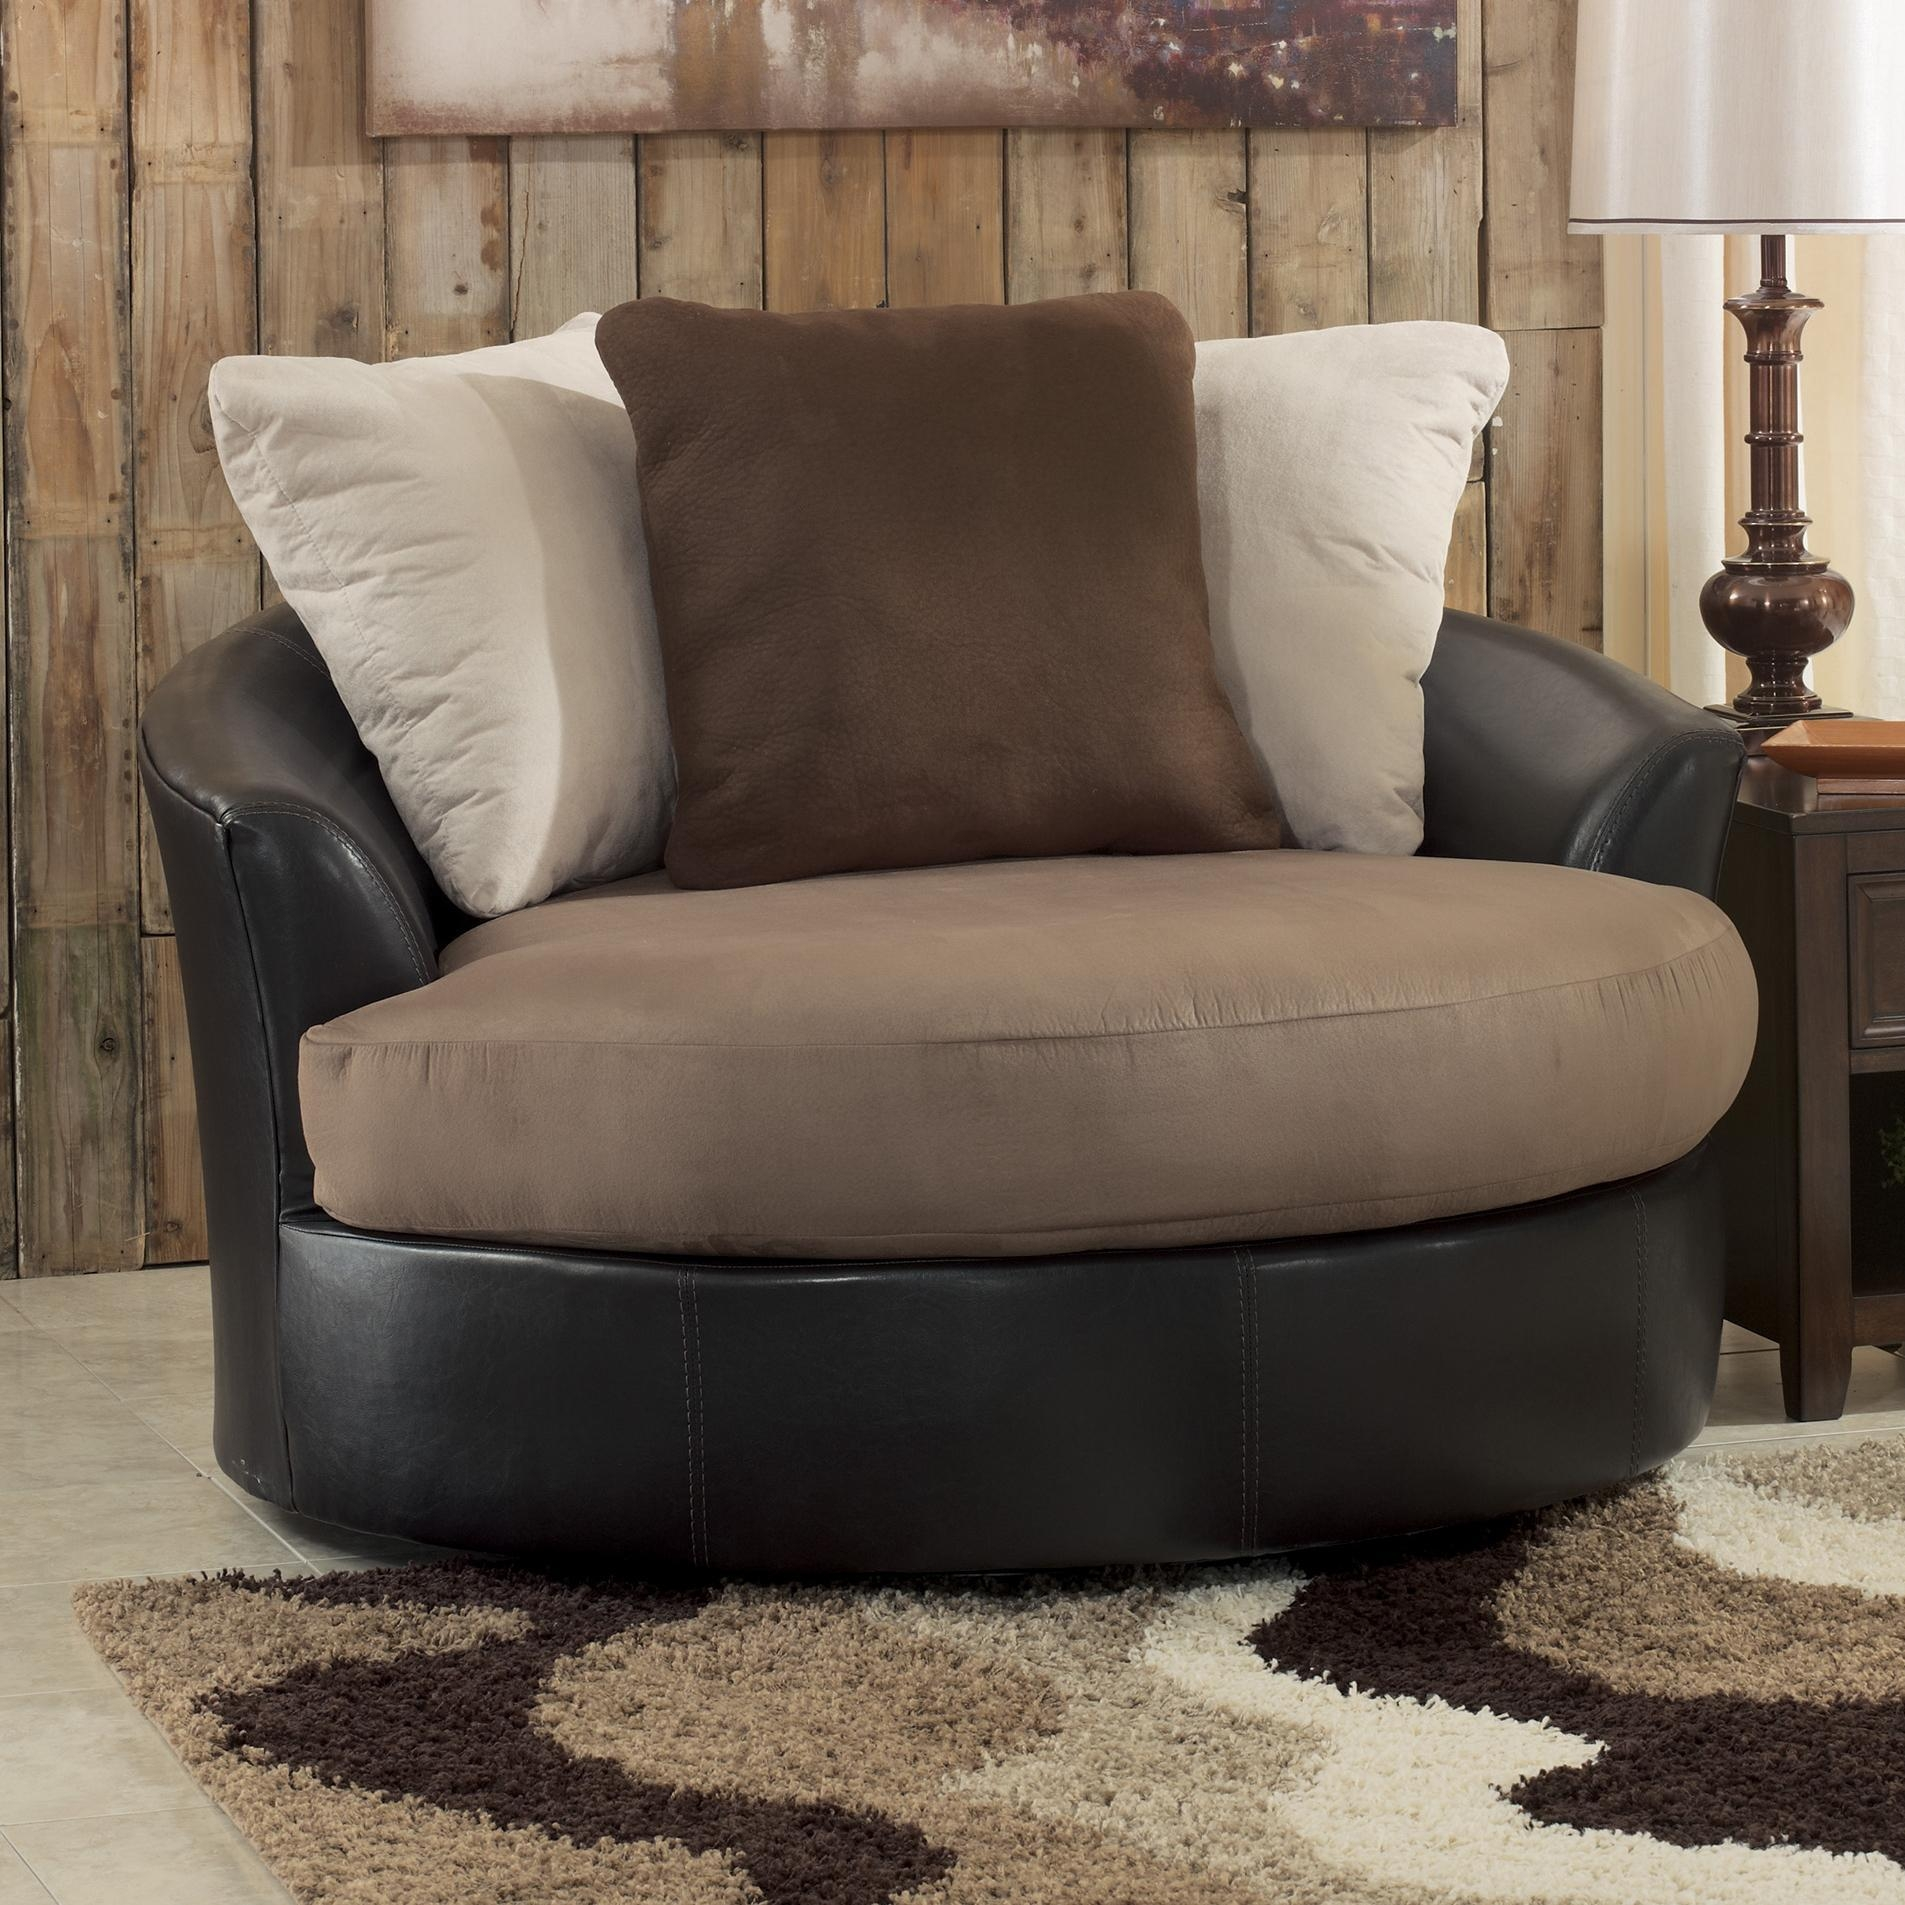 round chairs for living room 20 inspirations swivel sofa chairs sofa ideas 18970